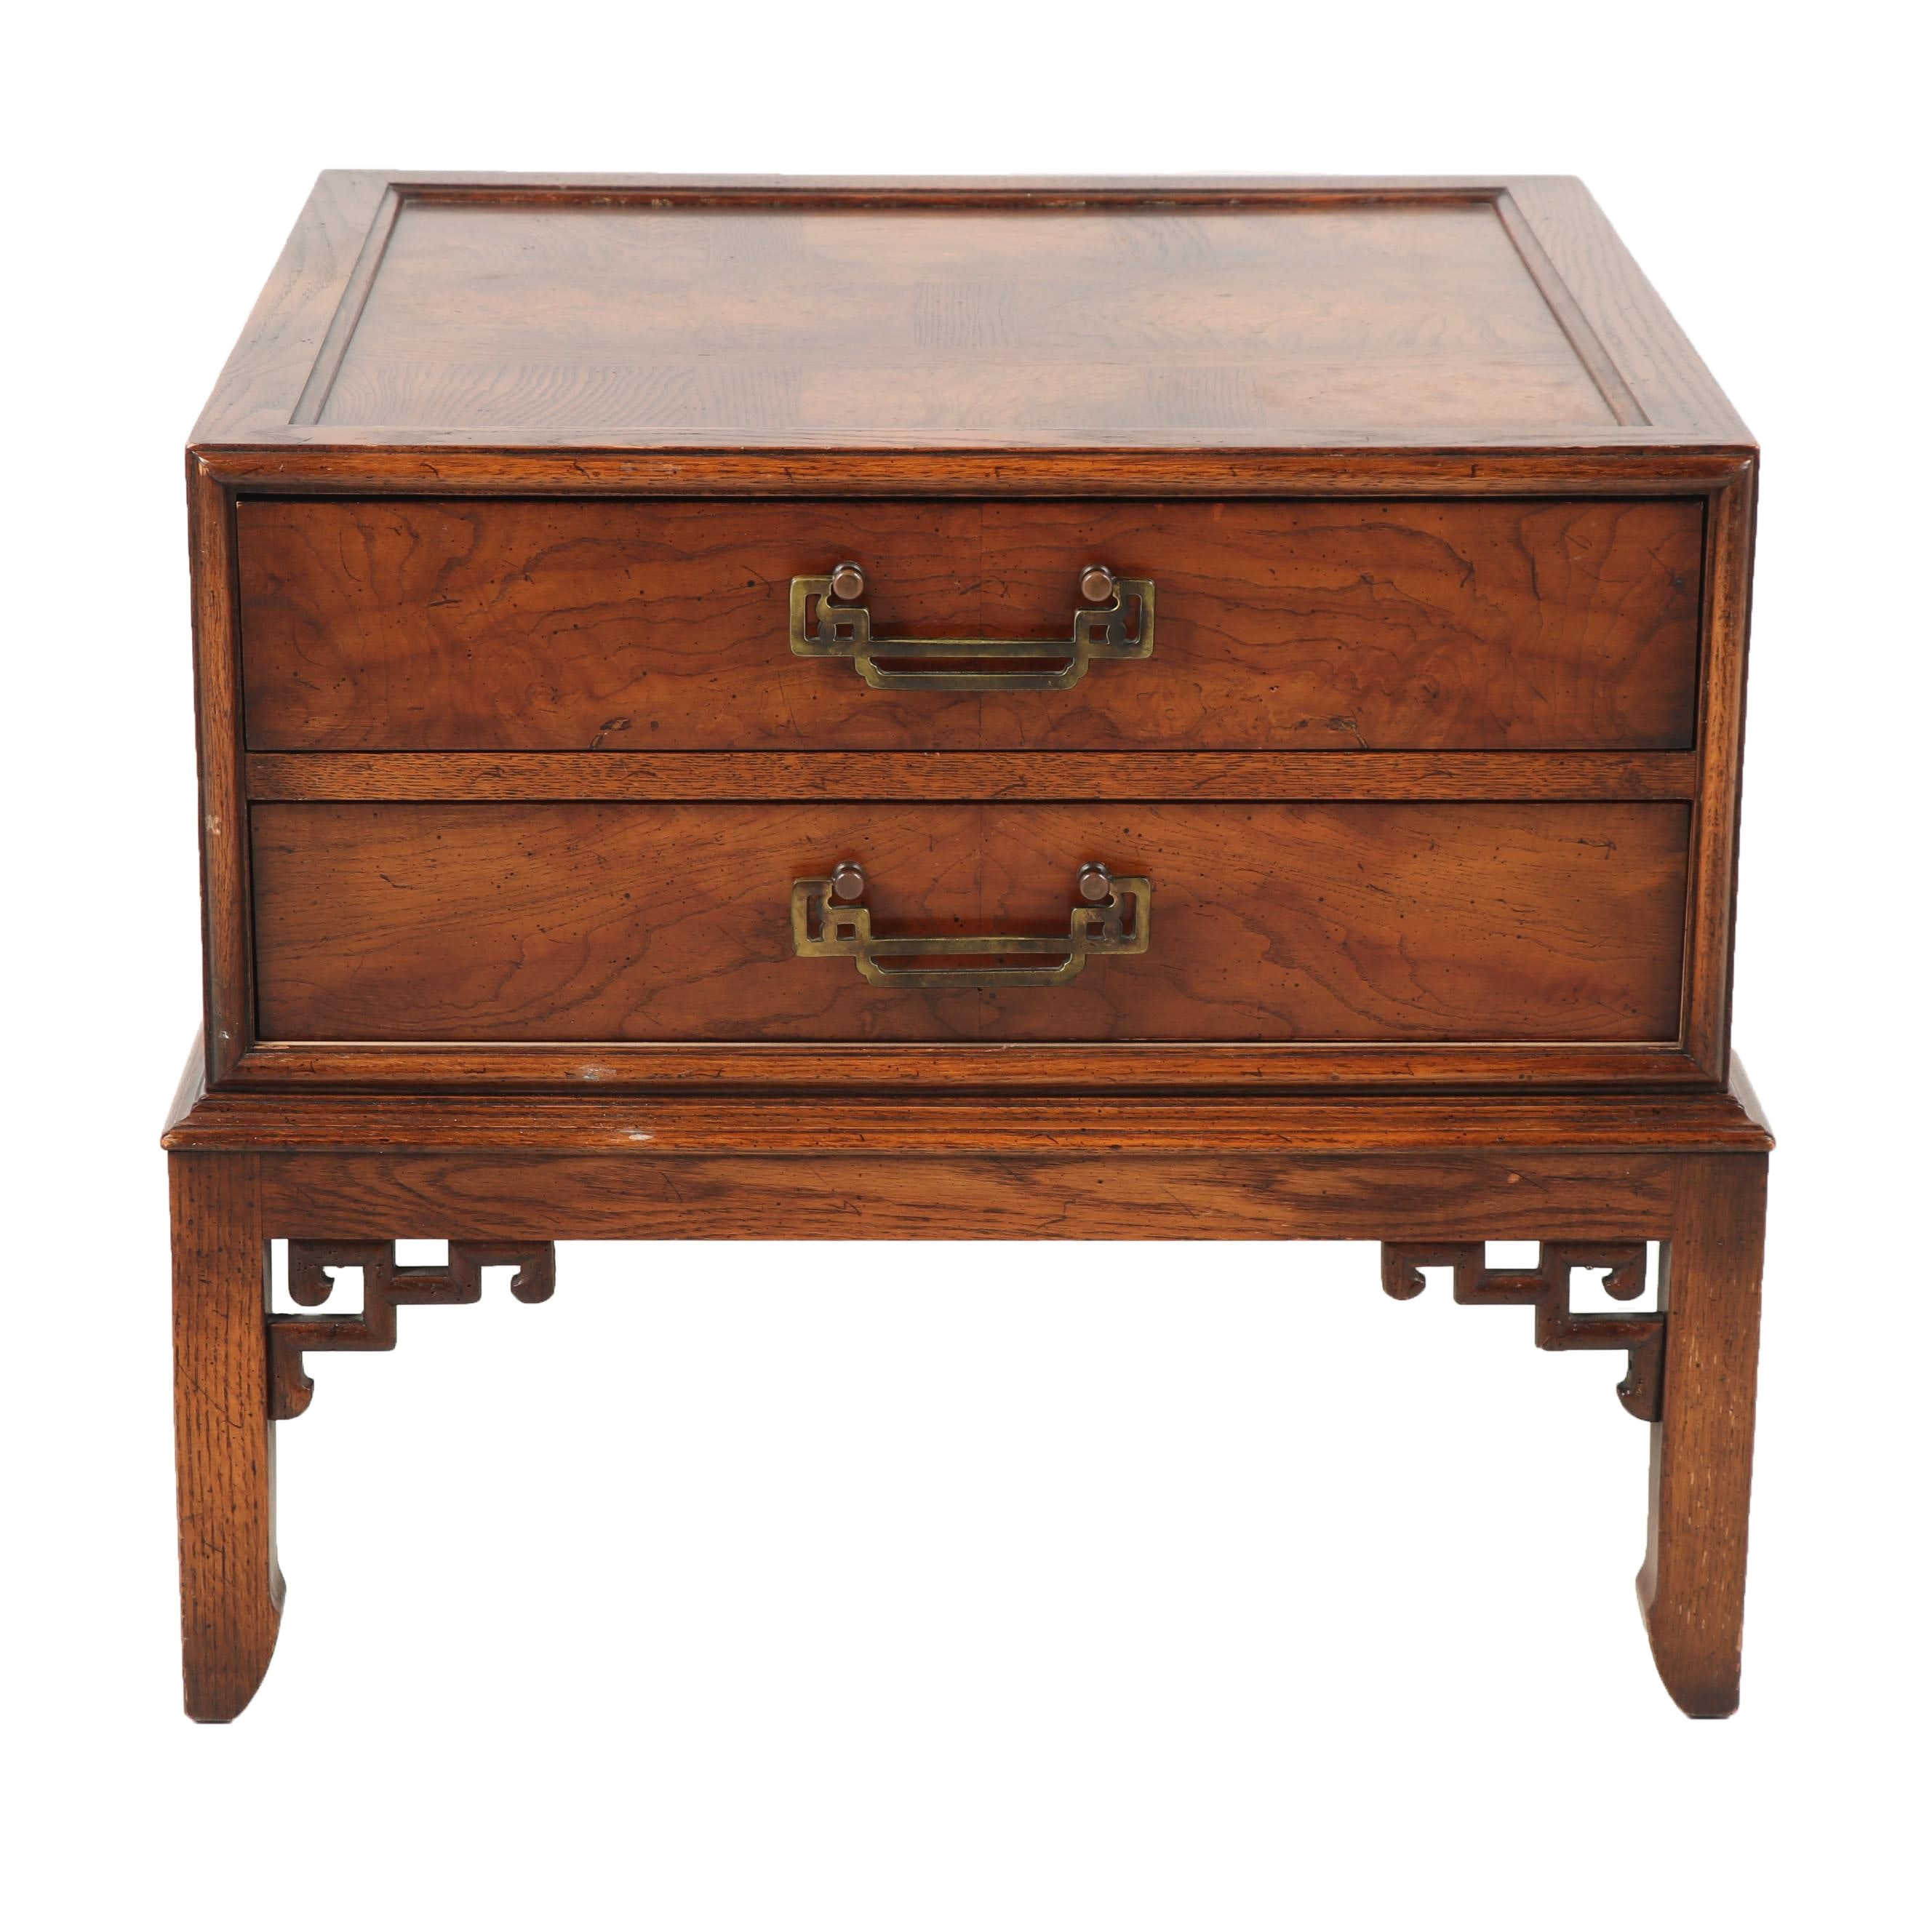 Hekman Chinese Style Fruitwood and Oak Bedside Table, Mid to Late 20th Century